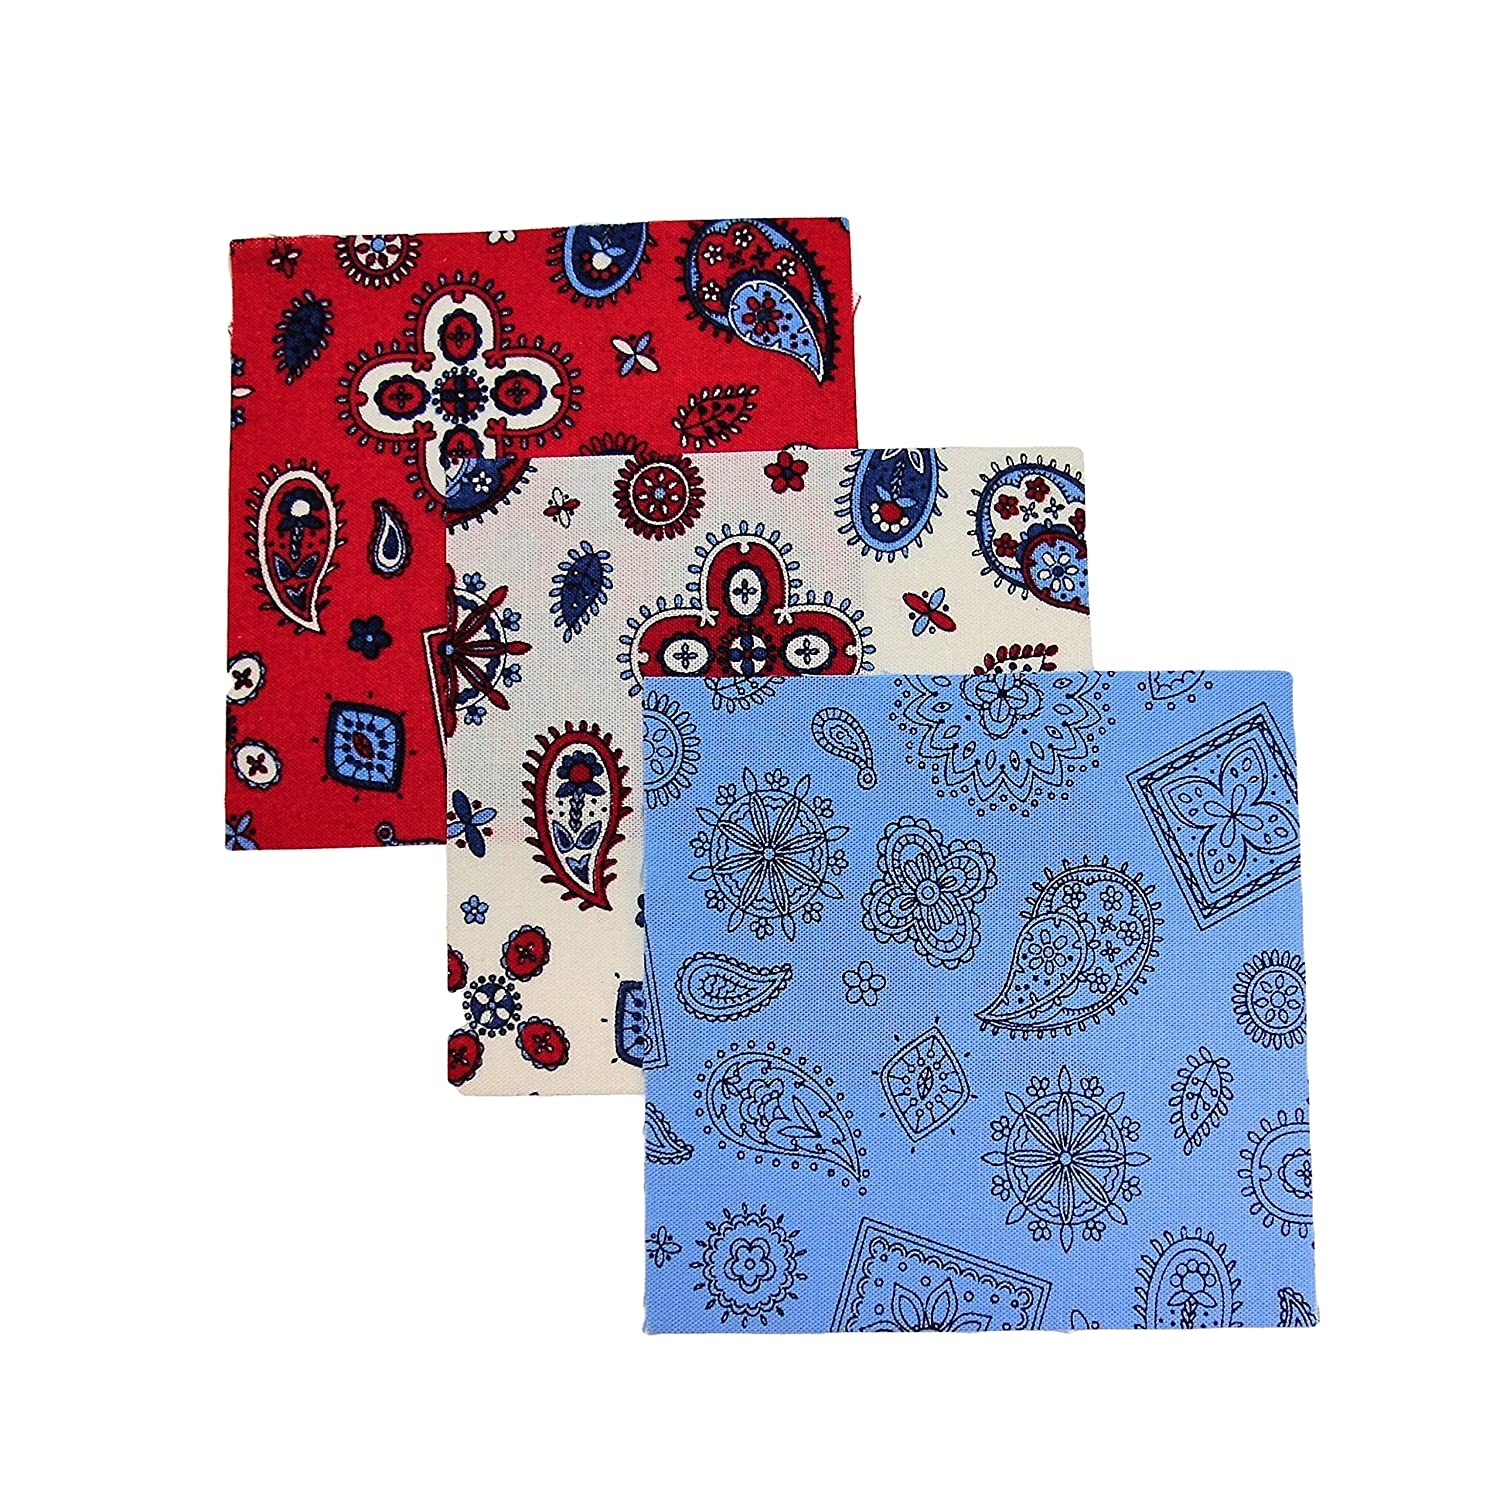 5 Inch Charm Pack DIE Cut Set of 42 Charm Packs for Quilting Precut Fabric Autumn Joy Quilting Fabric